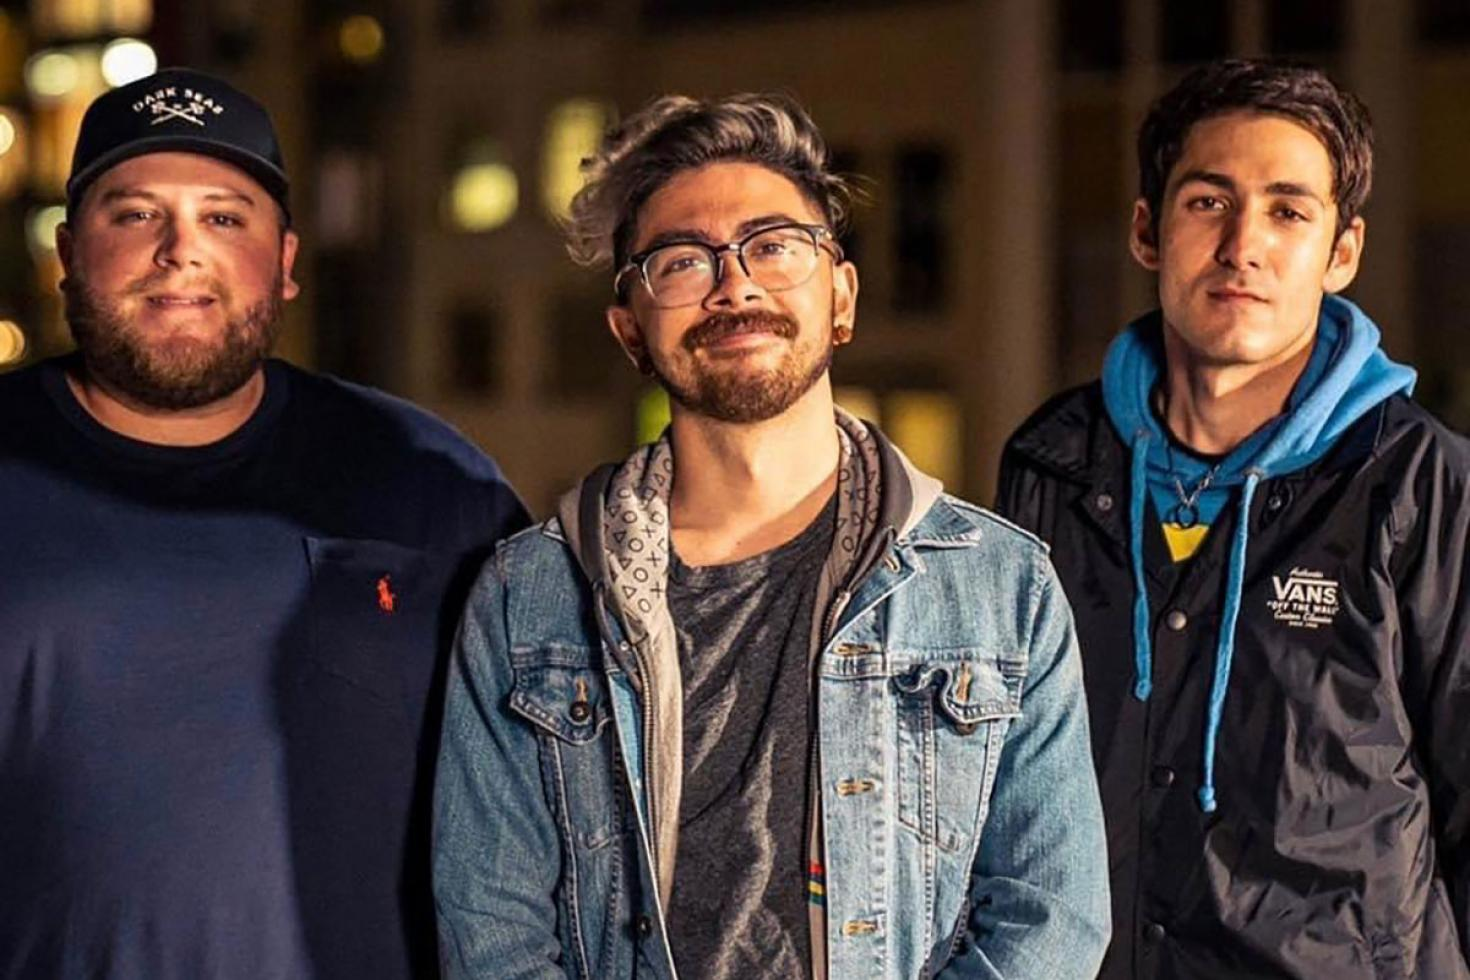 PREMIERE: Stealing Home take on Post Malone's 'Circles' in new video